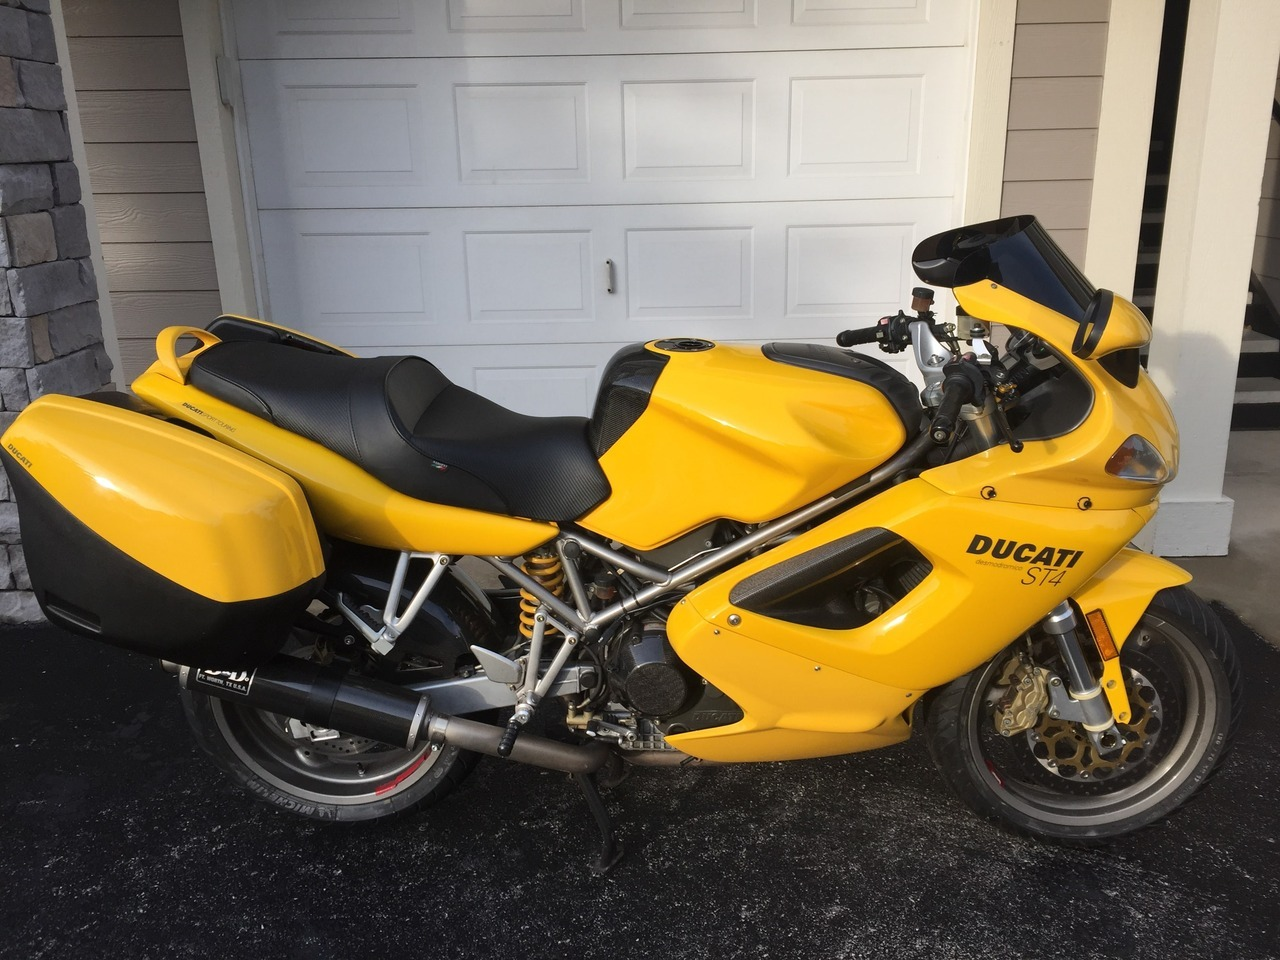 2000 Ducati St 4, motorcycle listing